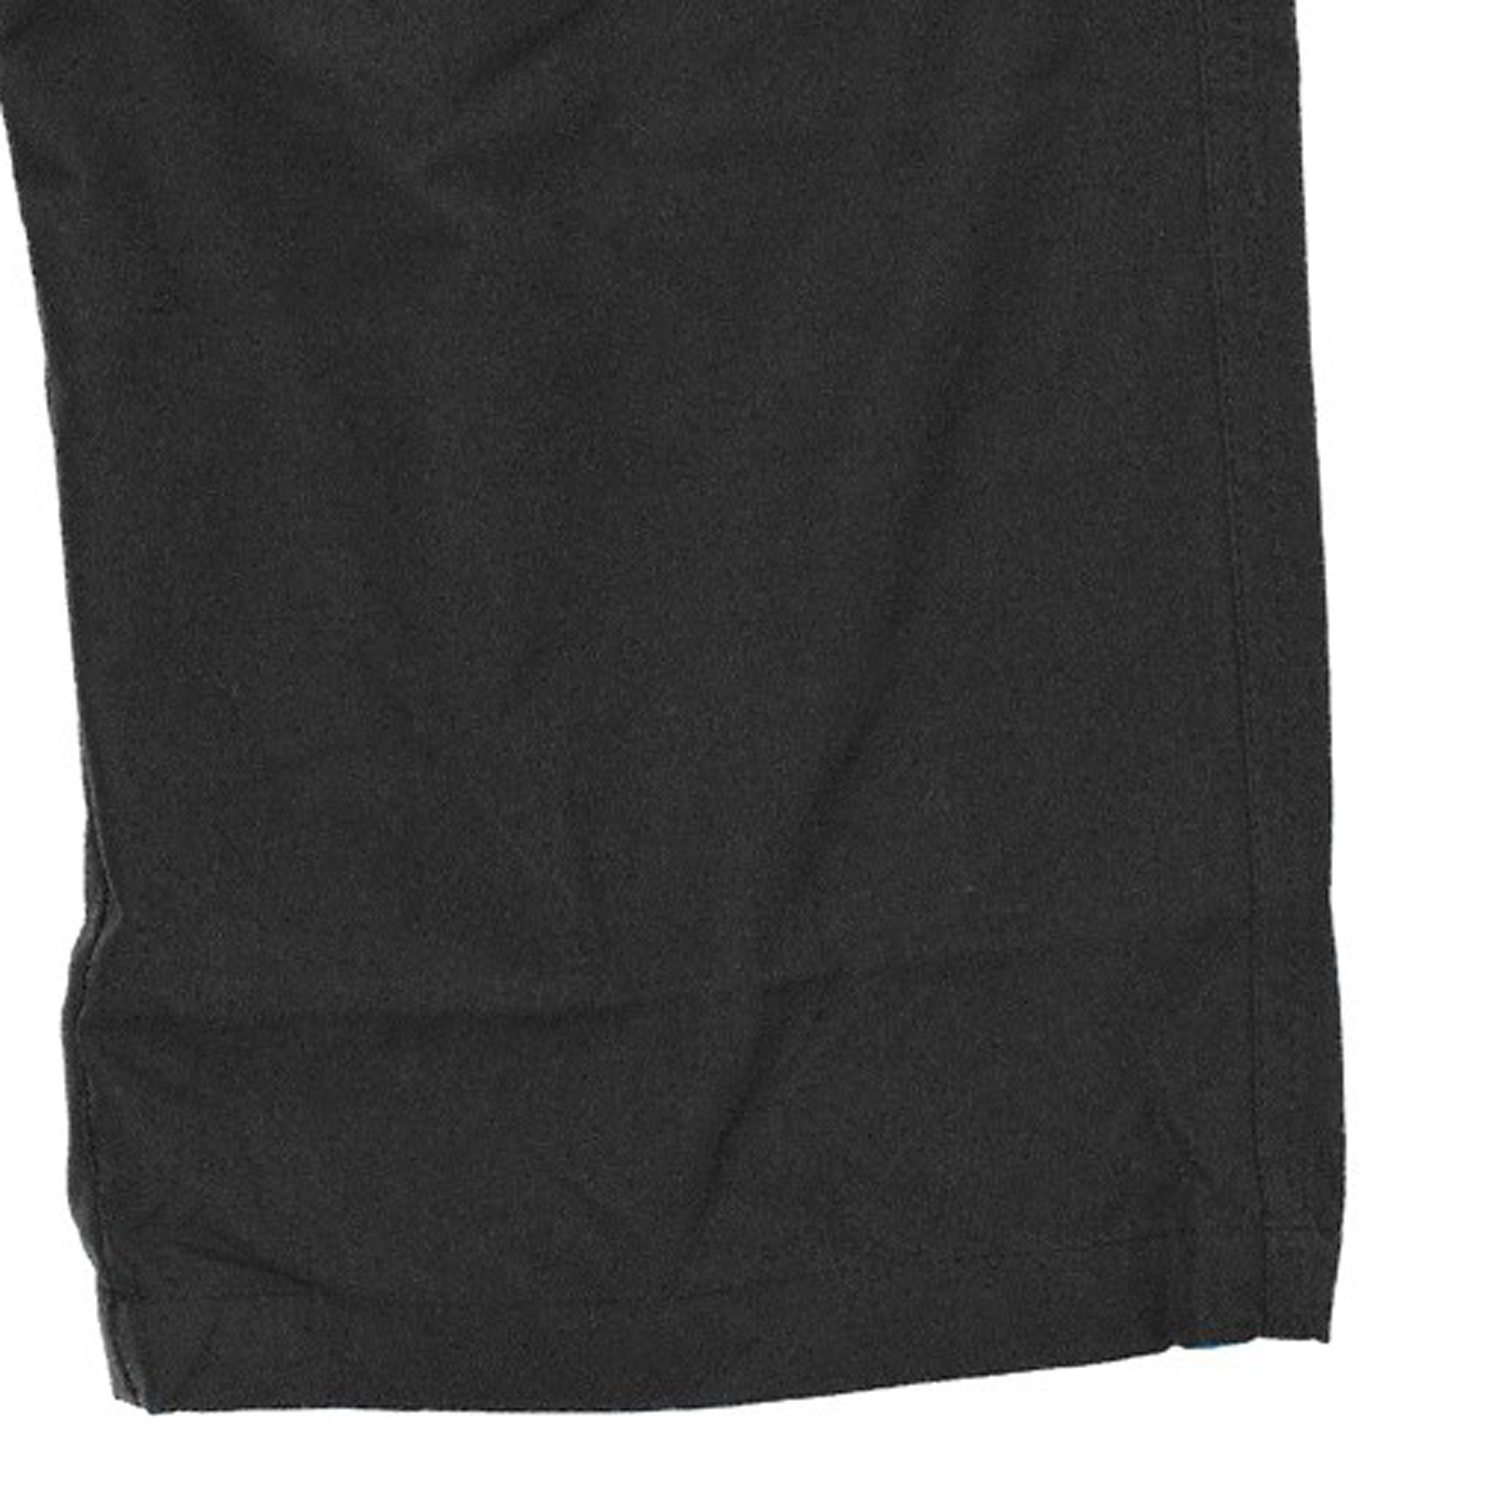 Detail Image to Fitness capri pants 3/4 long in black by Ahorn Sportswear in oversizes up to 10XL